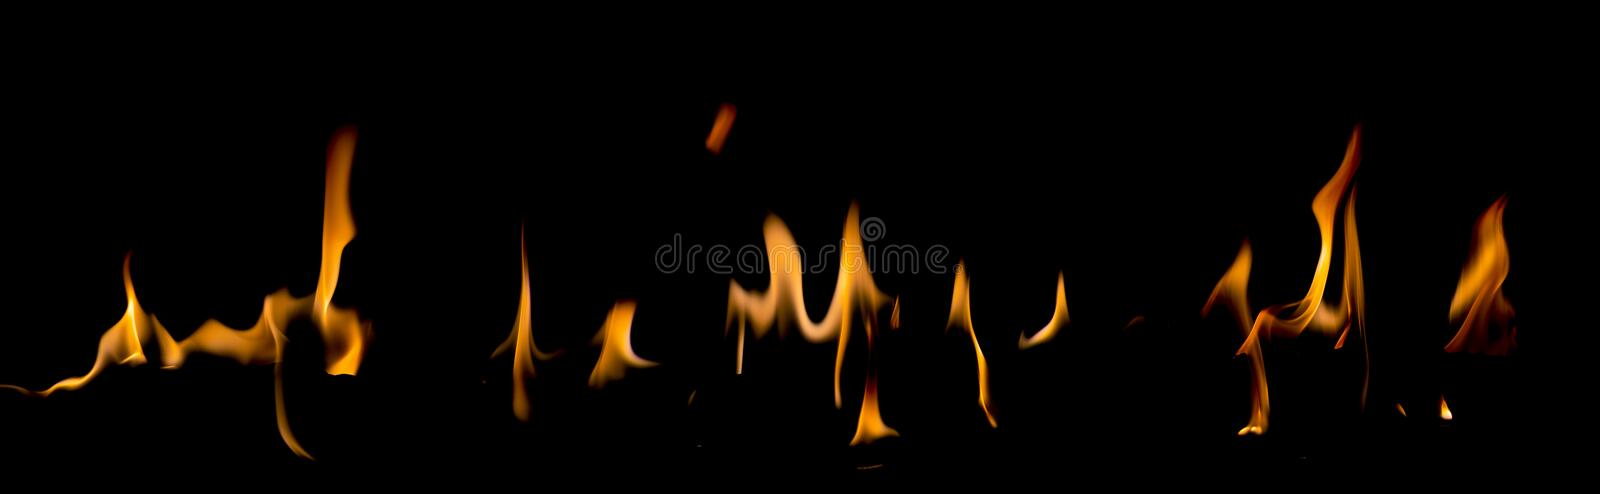 Fire flames on Abstract art black background, Burning red hot sparks rise. Fiery orange glowing flying particles stock photo